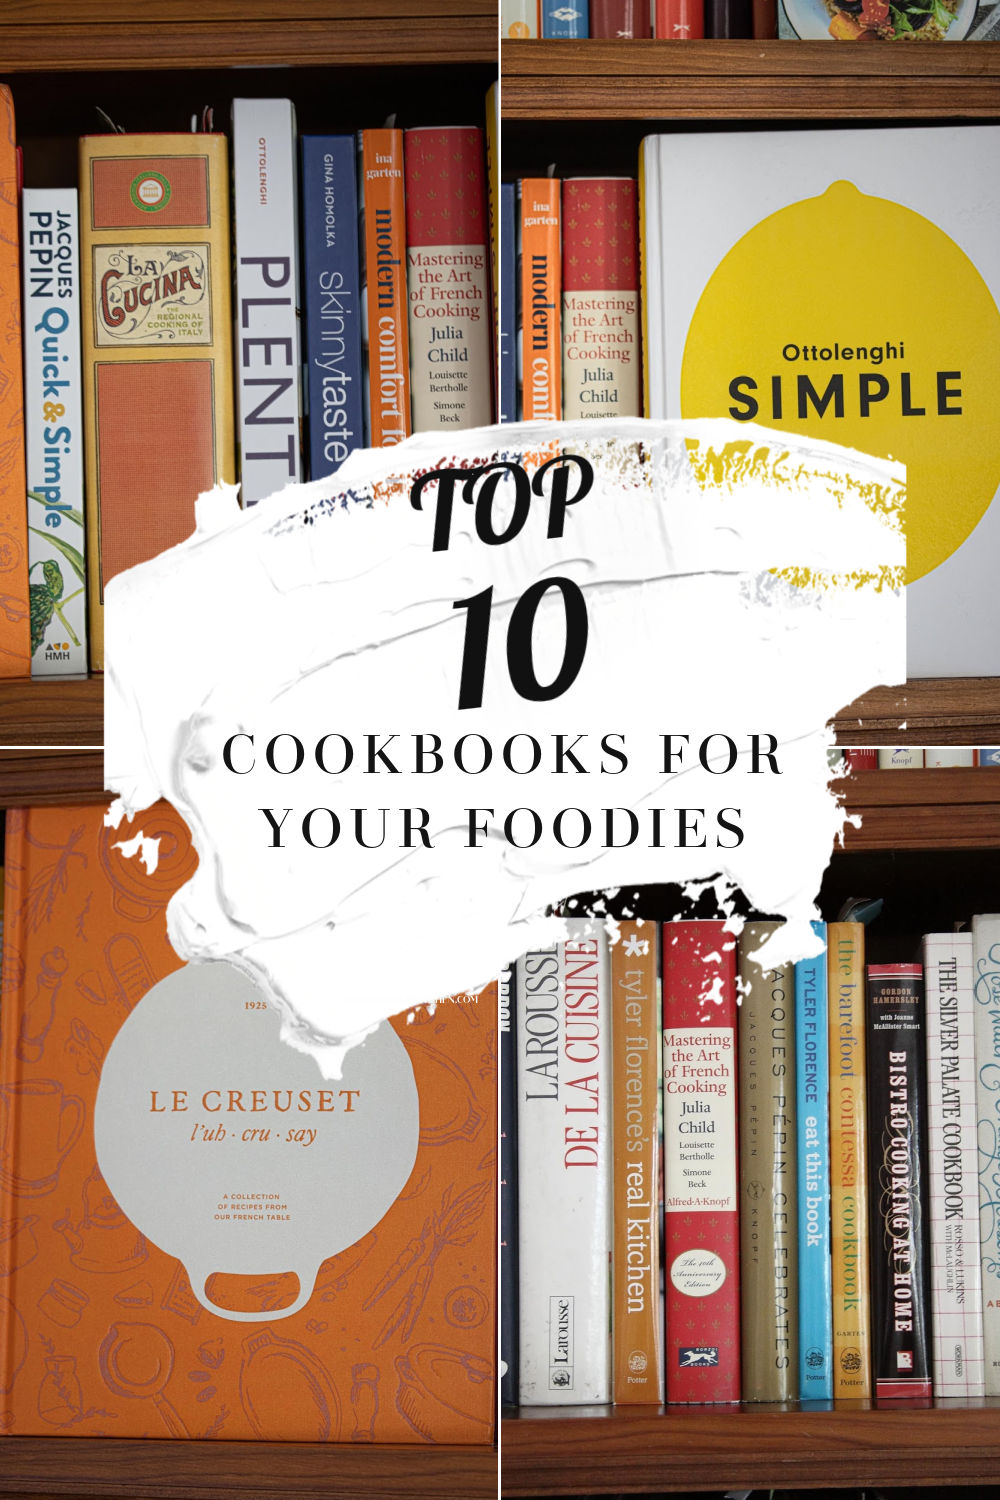 TOP 10 COOKBOOKS